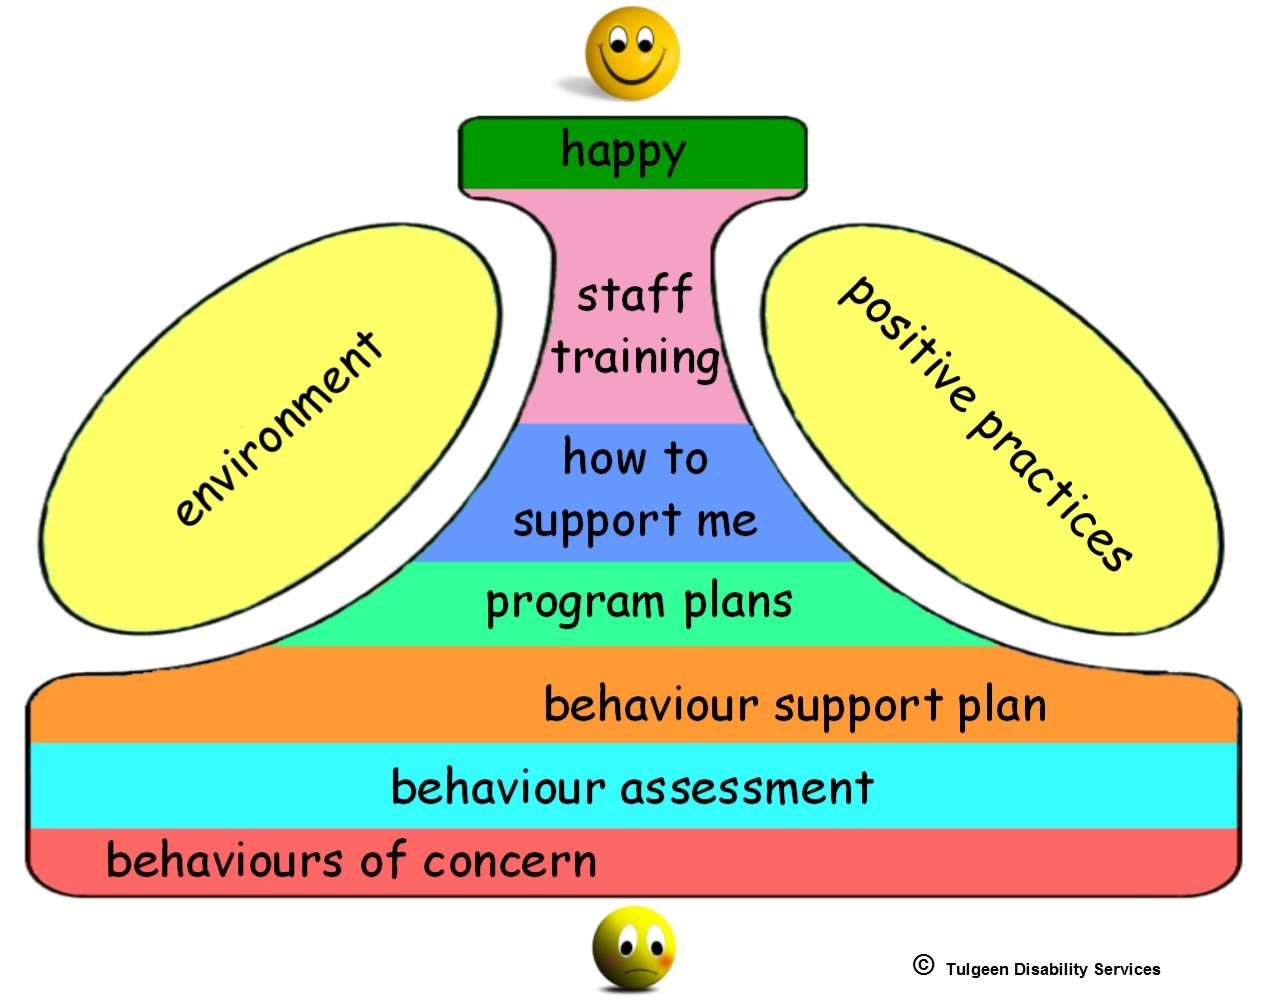 supporting positive behaviour For residential care staff within the adult sector (elderly, learning disability, mental health etc) and child sector workers (children's homes, foster carers, parents.